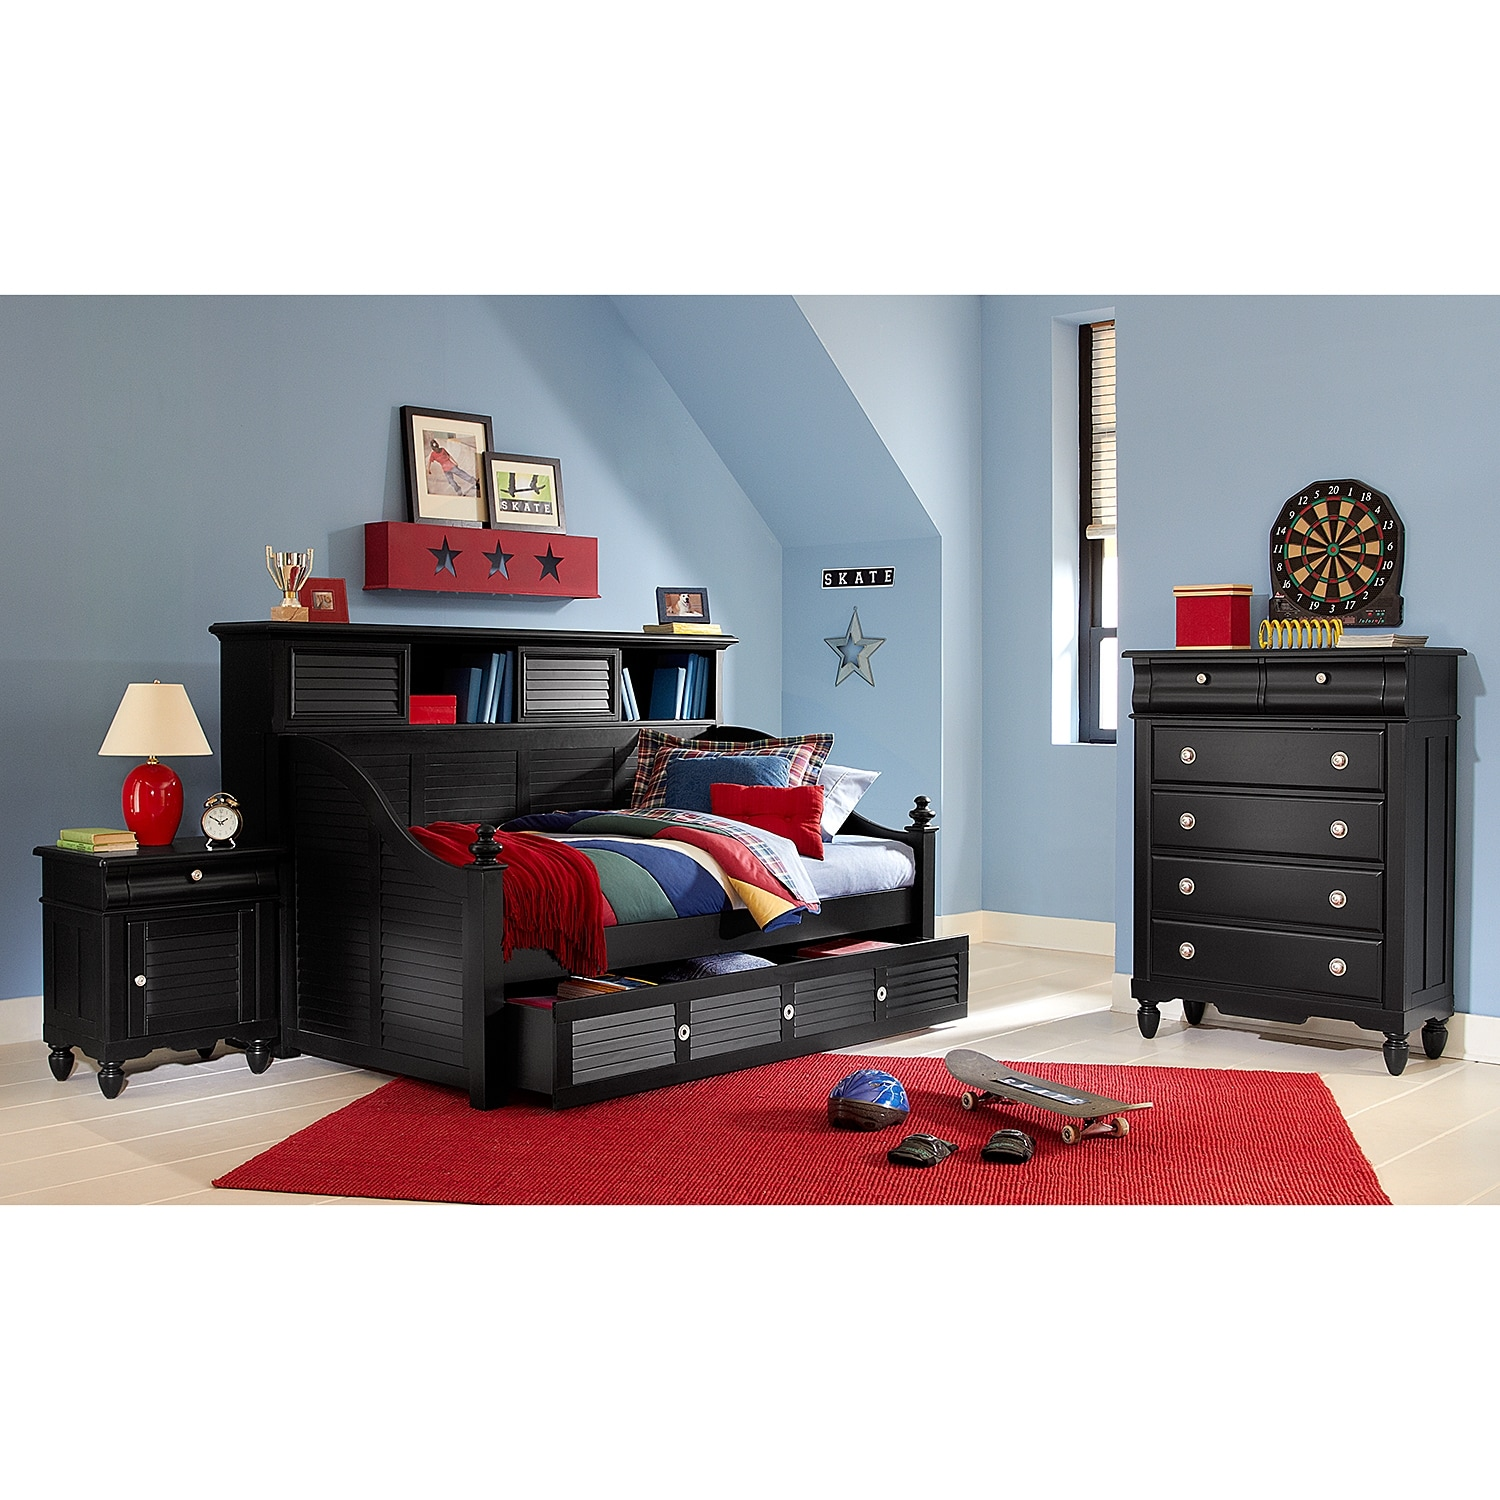 Seaside Black Ii Bookcase Daybed With Trundle Value City